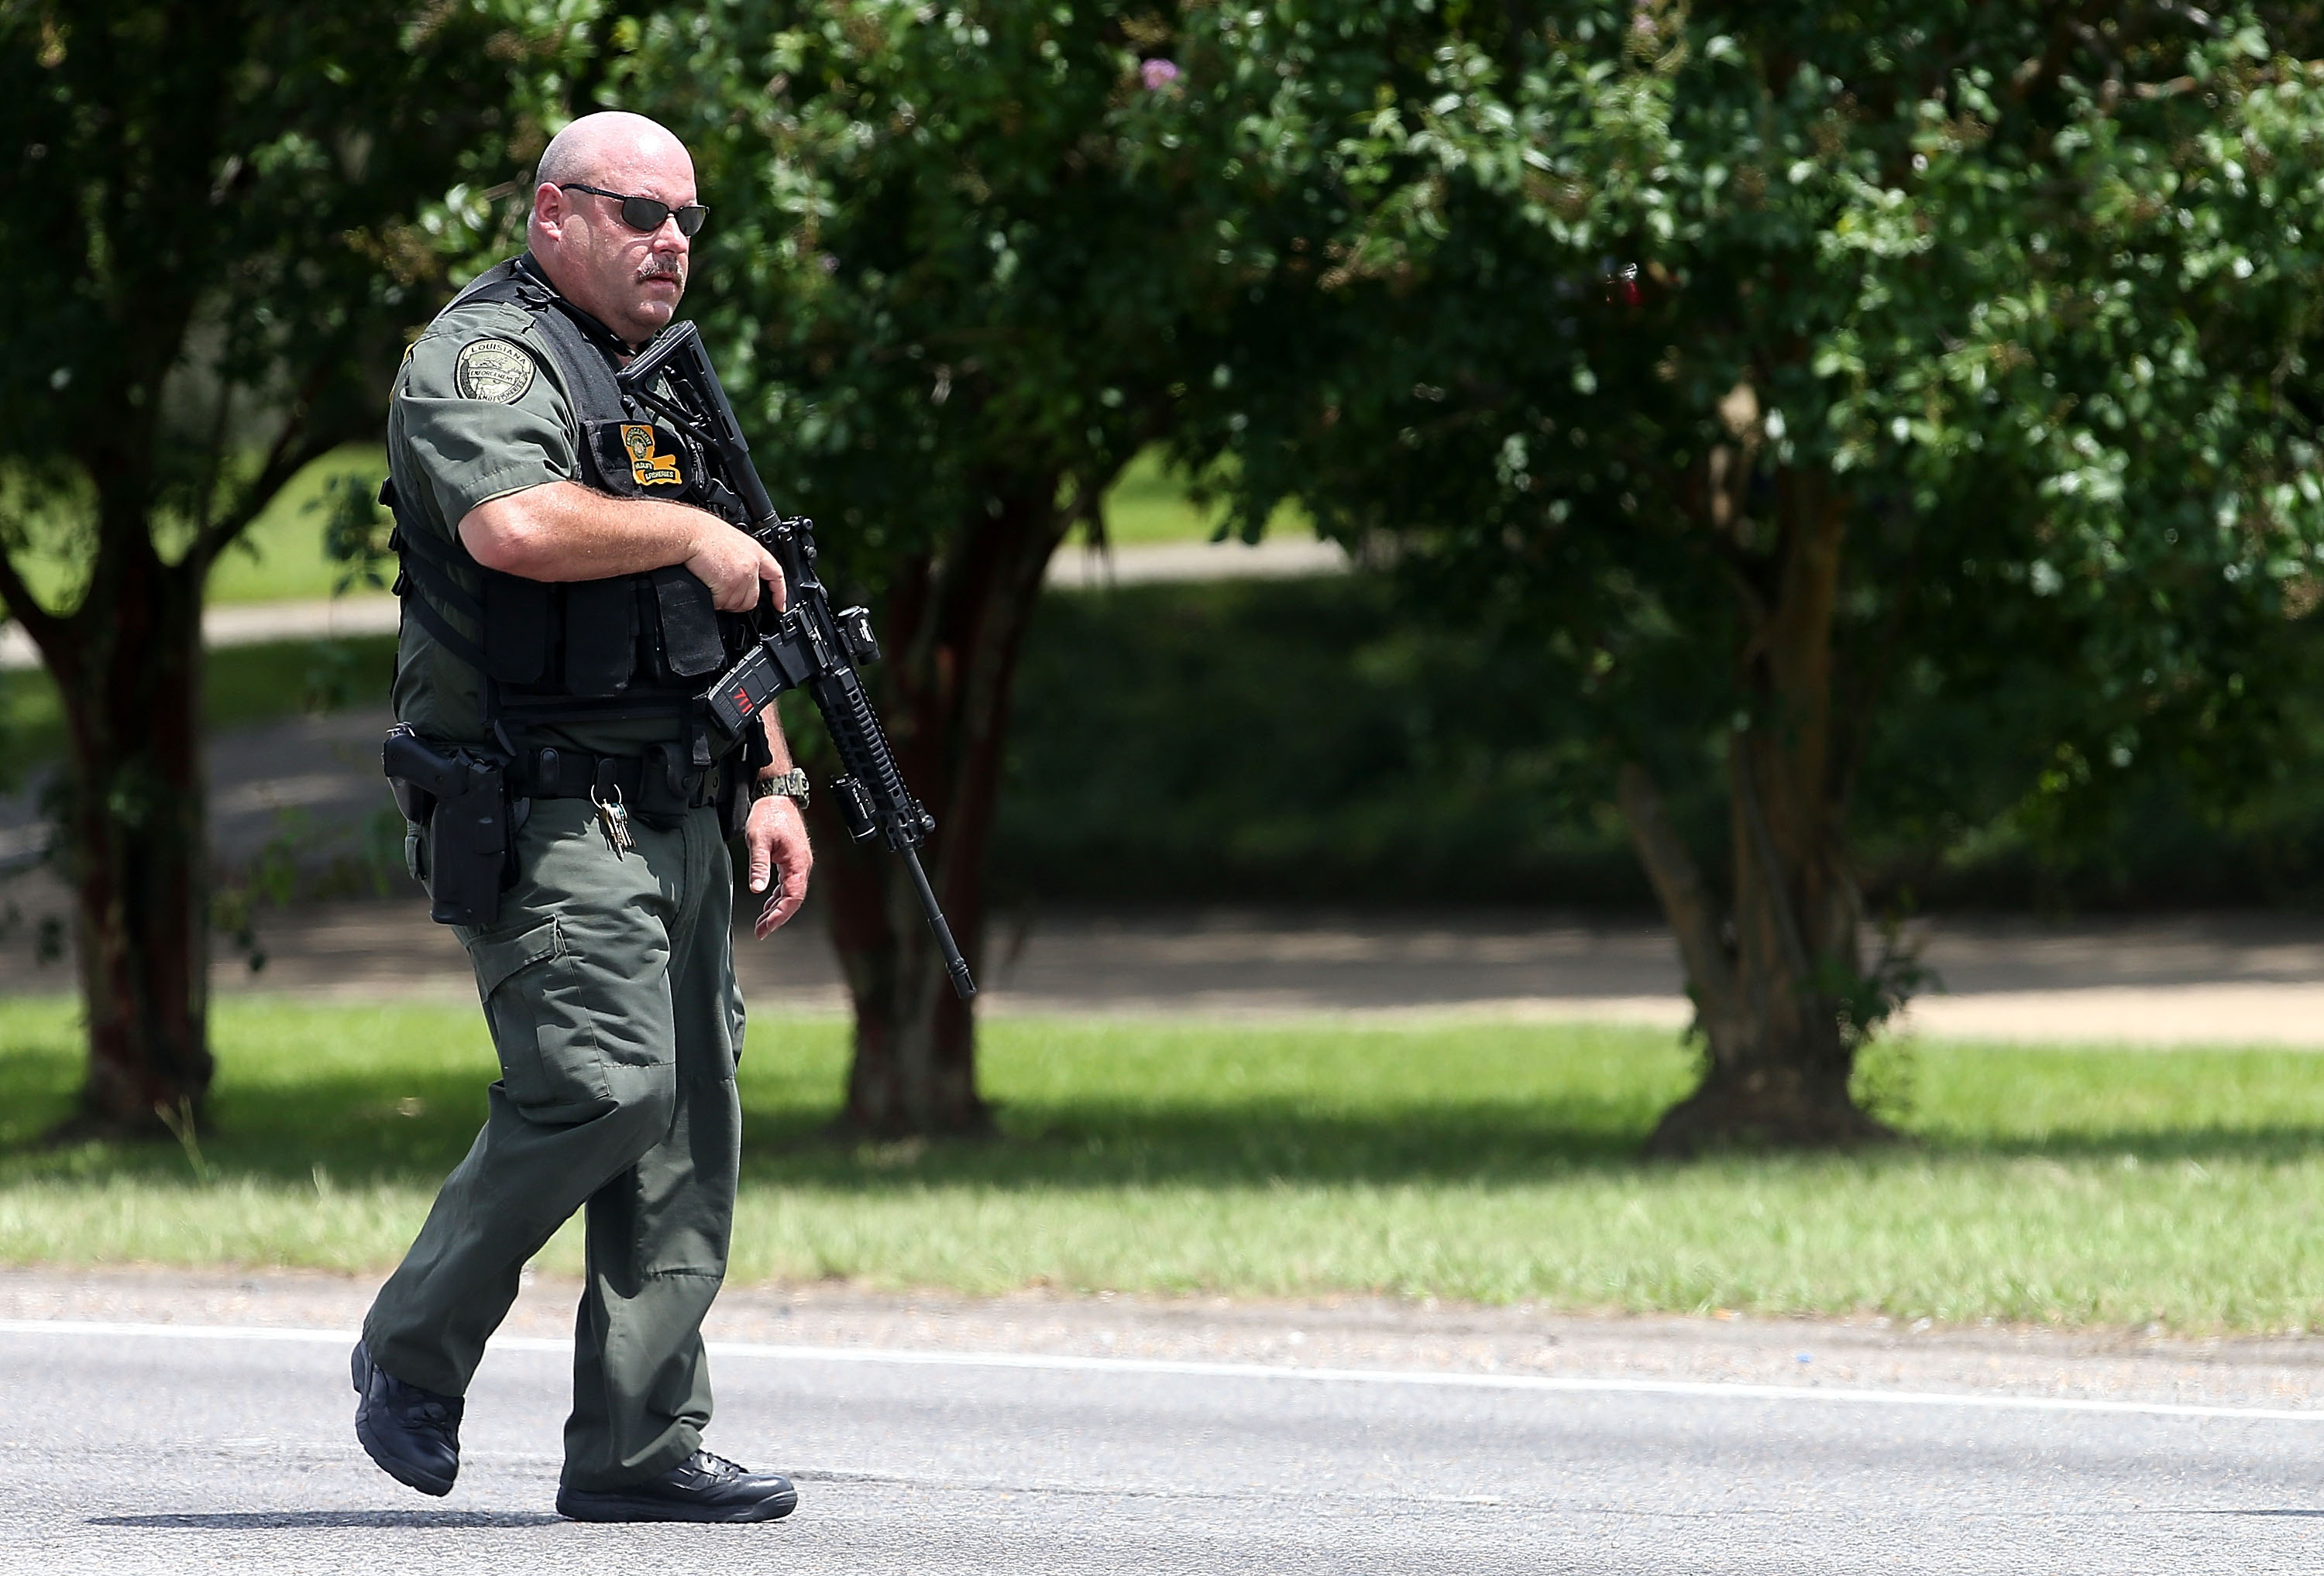 Baton Rouge Police officers patrol Airline Highway after three police officers were killed there early the morning of July 17 in Baton Rouge, La. (Sean Gardner/Getty Images)